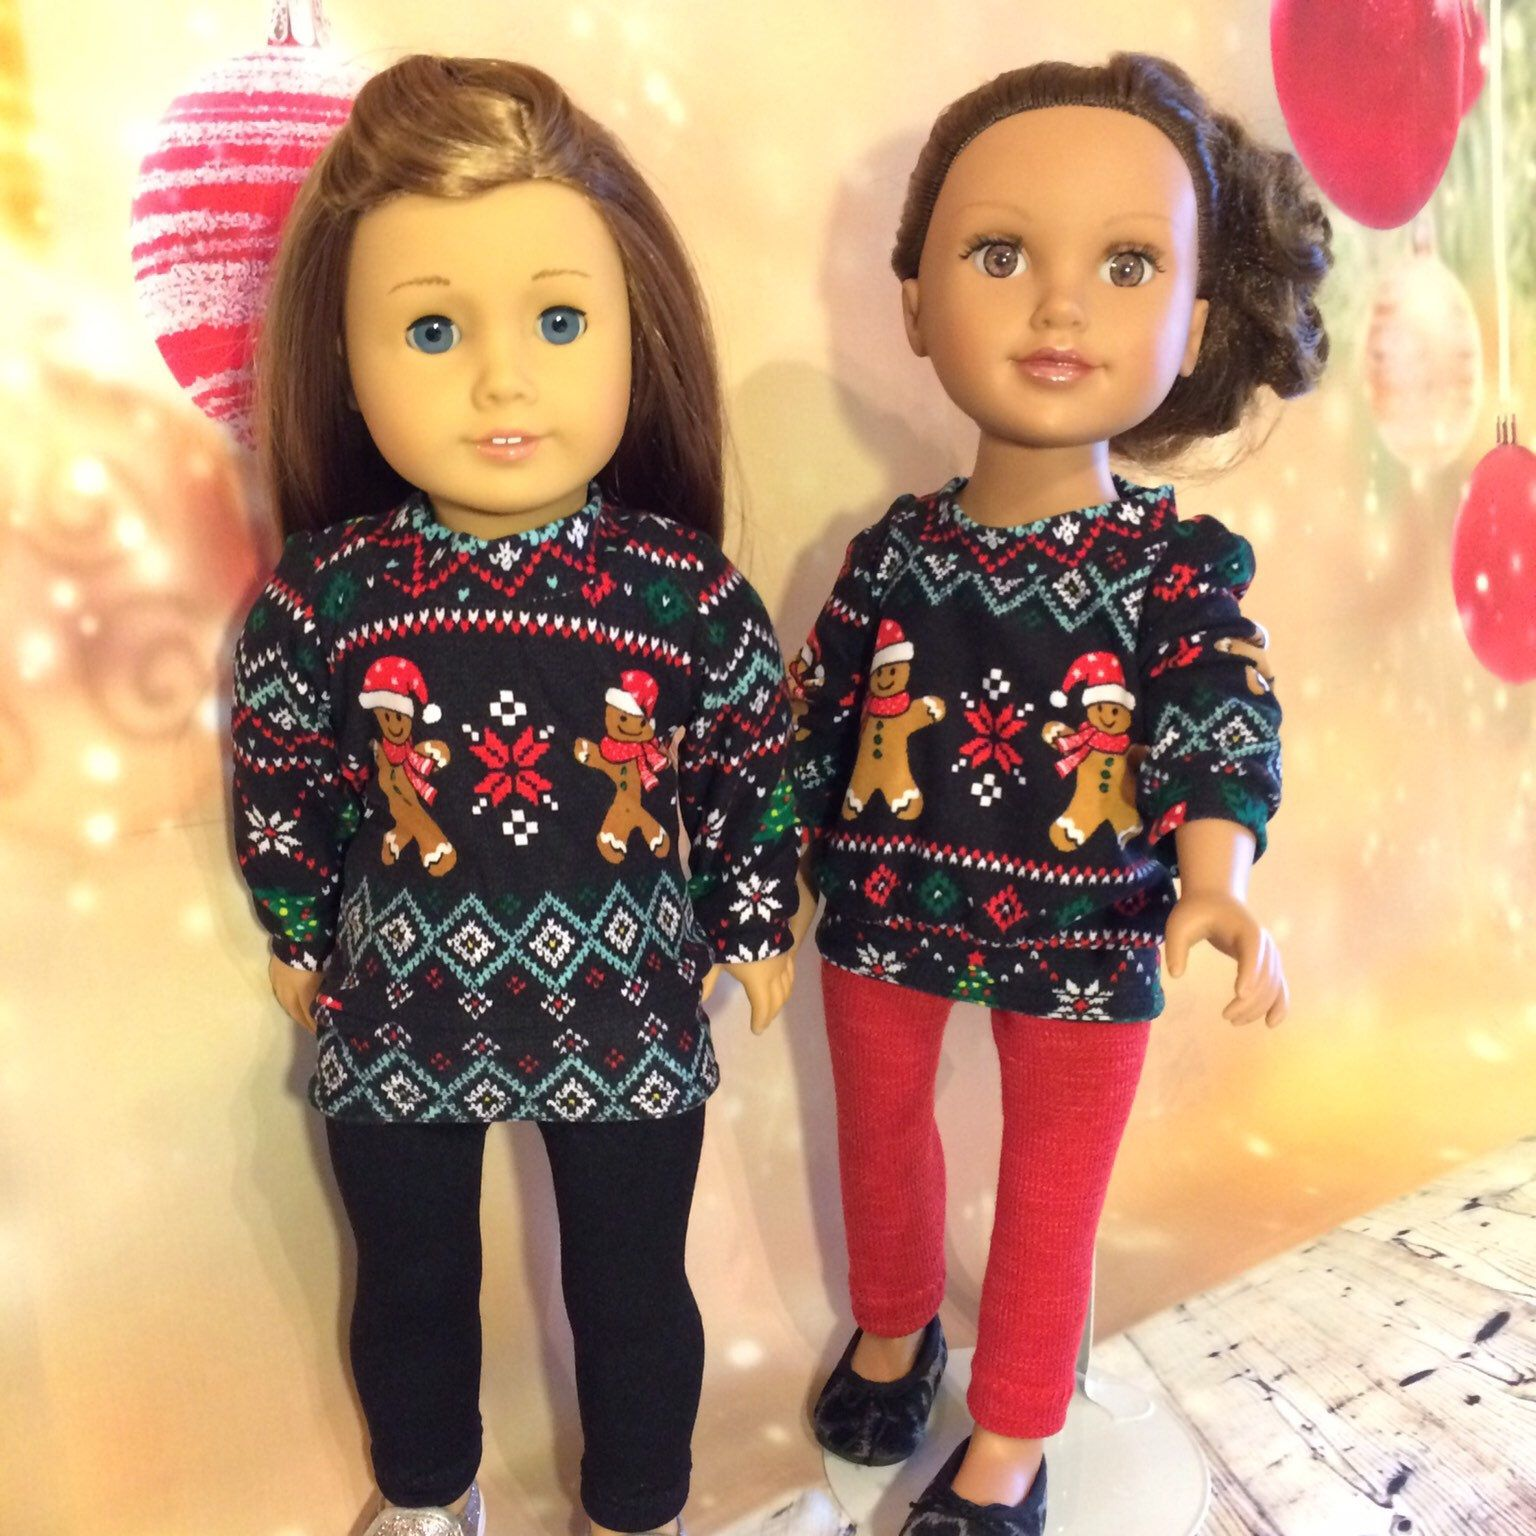 Gingerbread Tunic and Legging Outfit for 18 Inch Dolls #18inchdollsandclothes